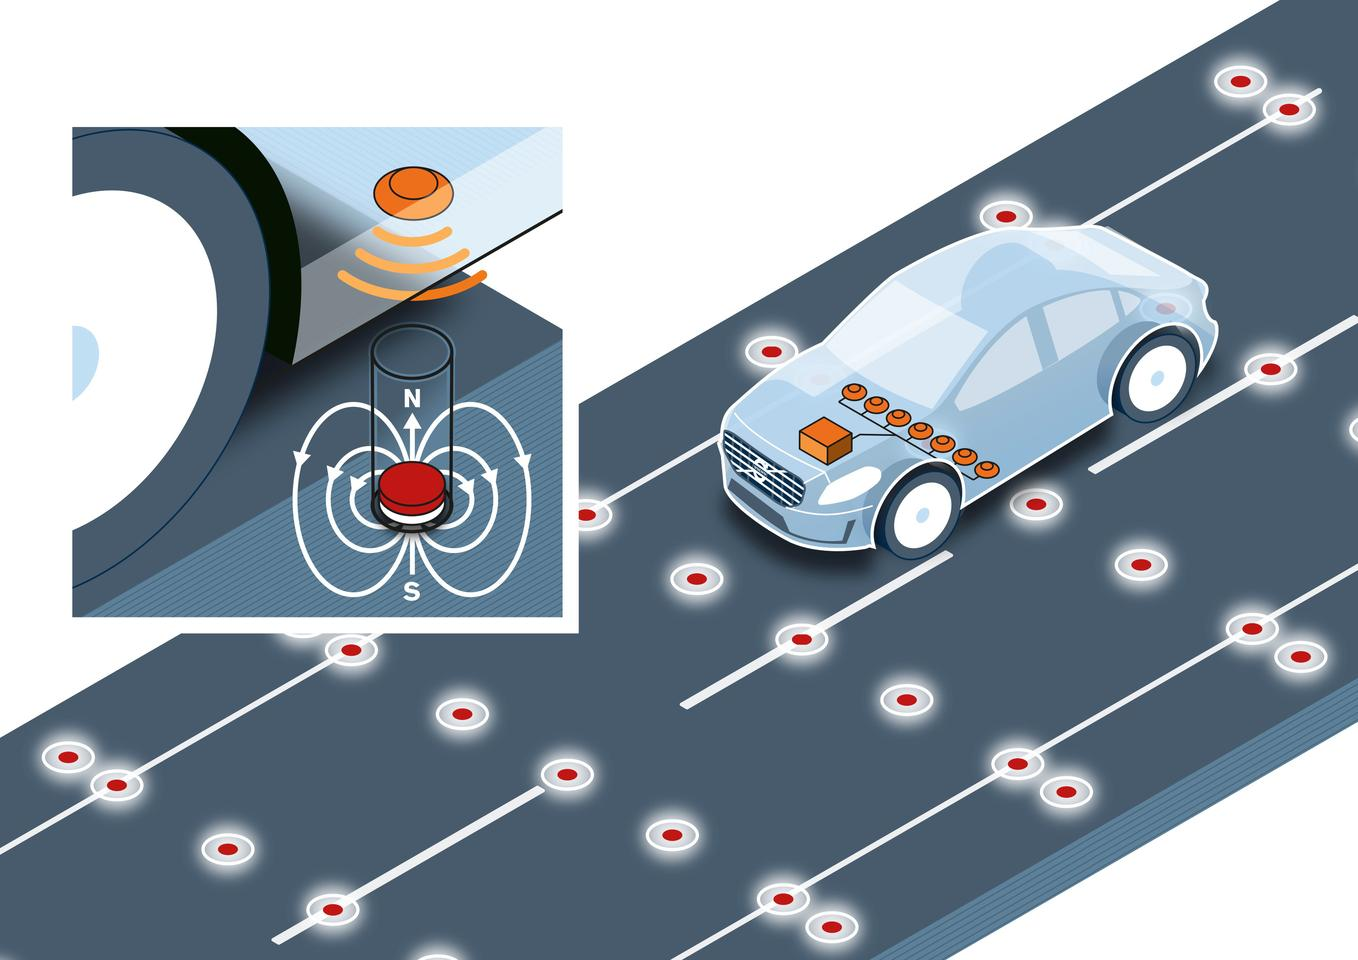 Volvo has completed a research project testing the use of magnets in the roadway to help self-driving cars determine their position (Image: Volvo Car Group)